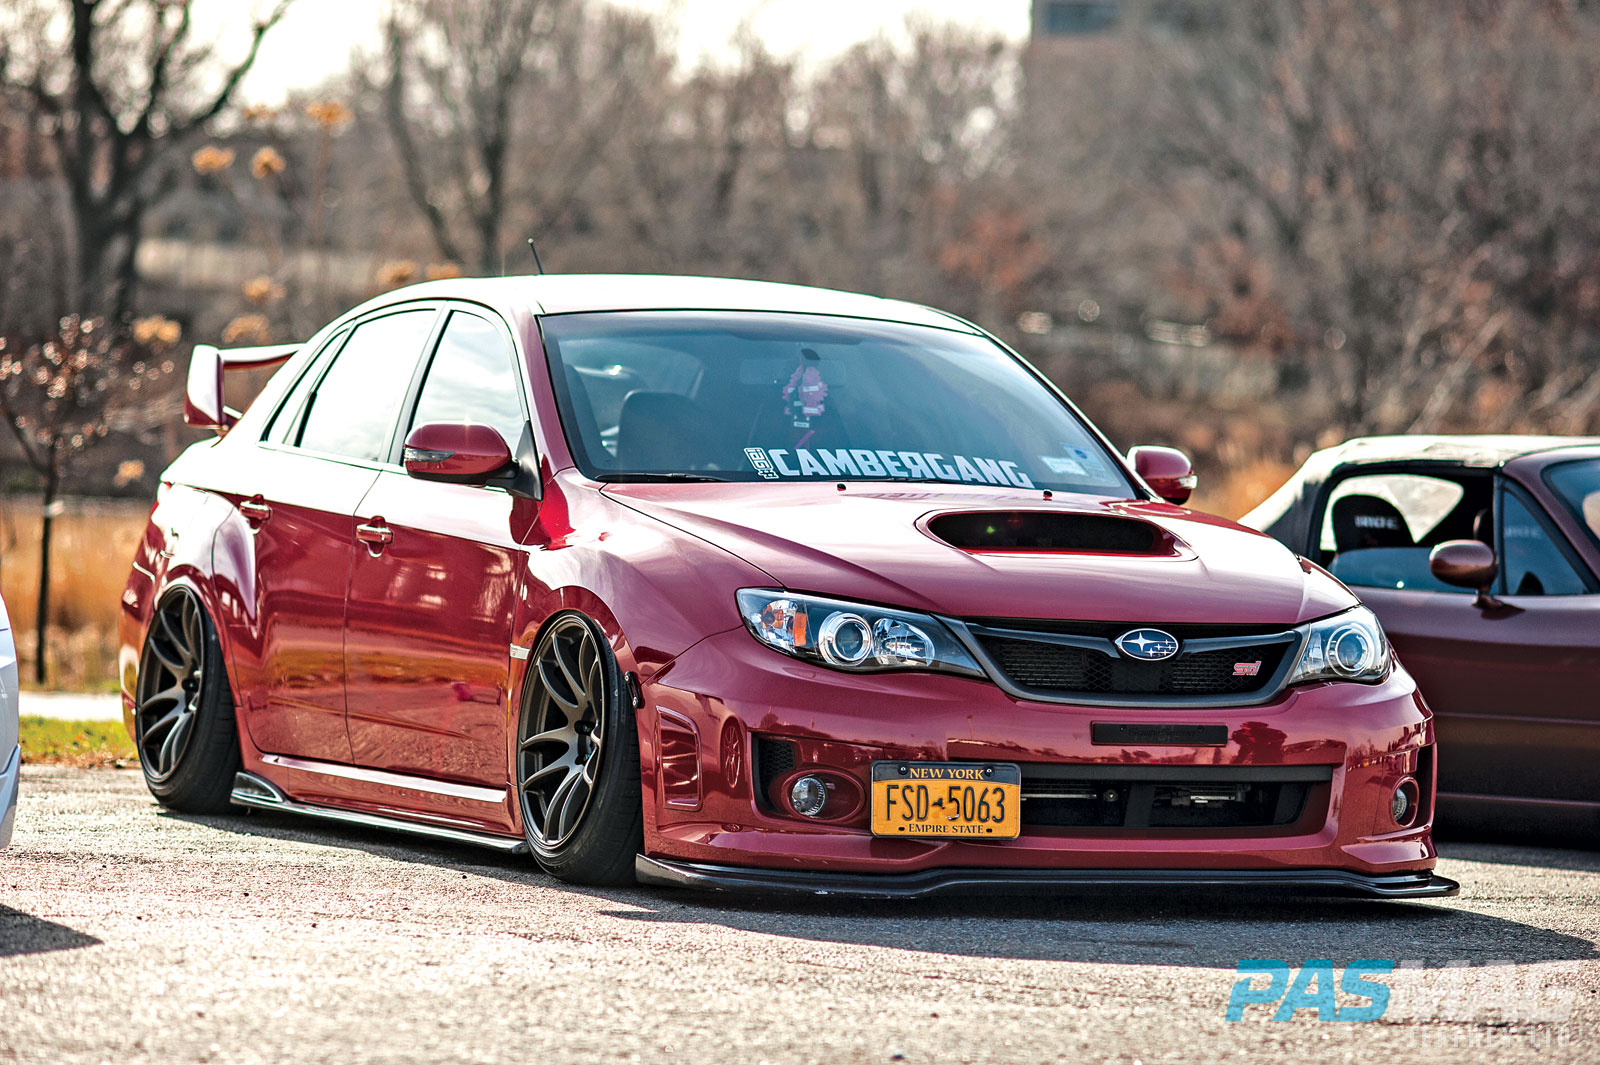 PASMAG Trending Haters Gonna Hate Subaru WRX STI Stance 03